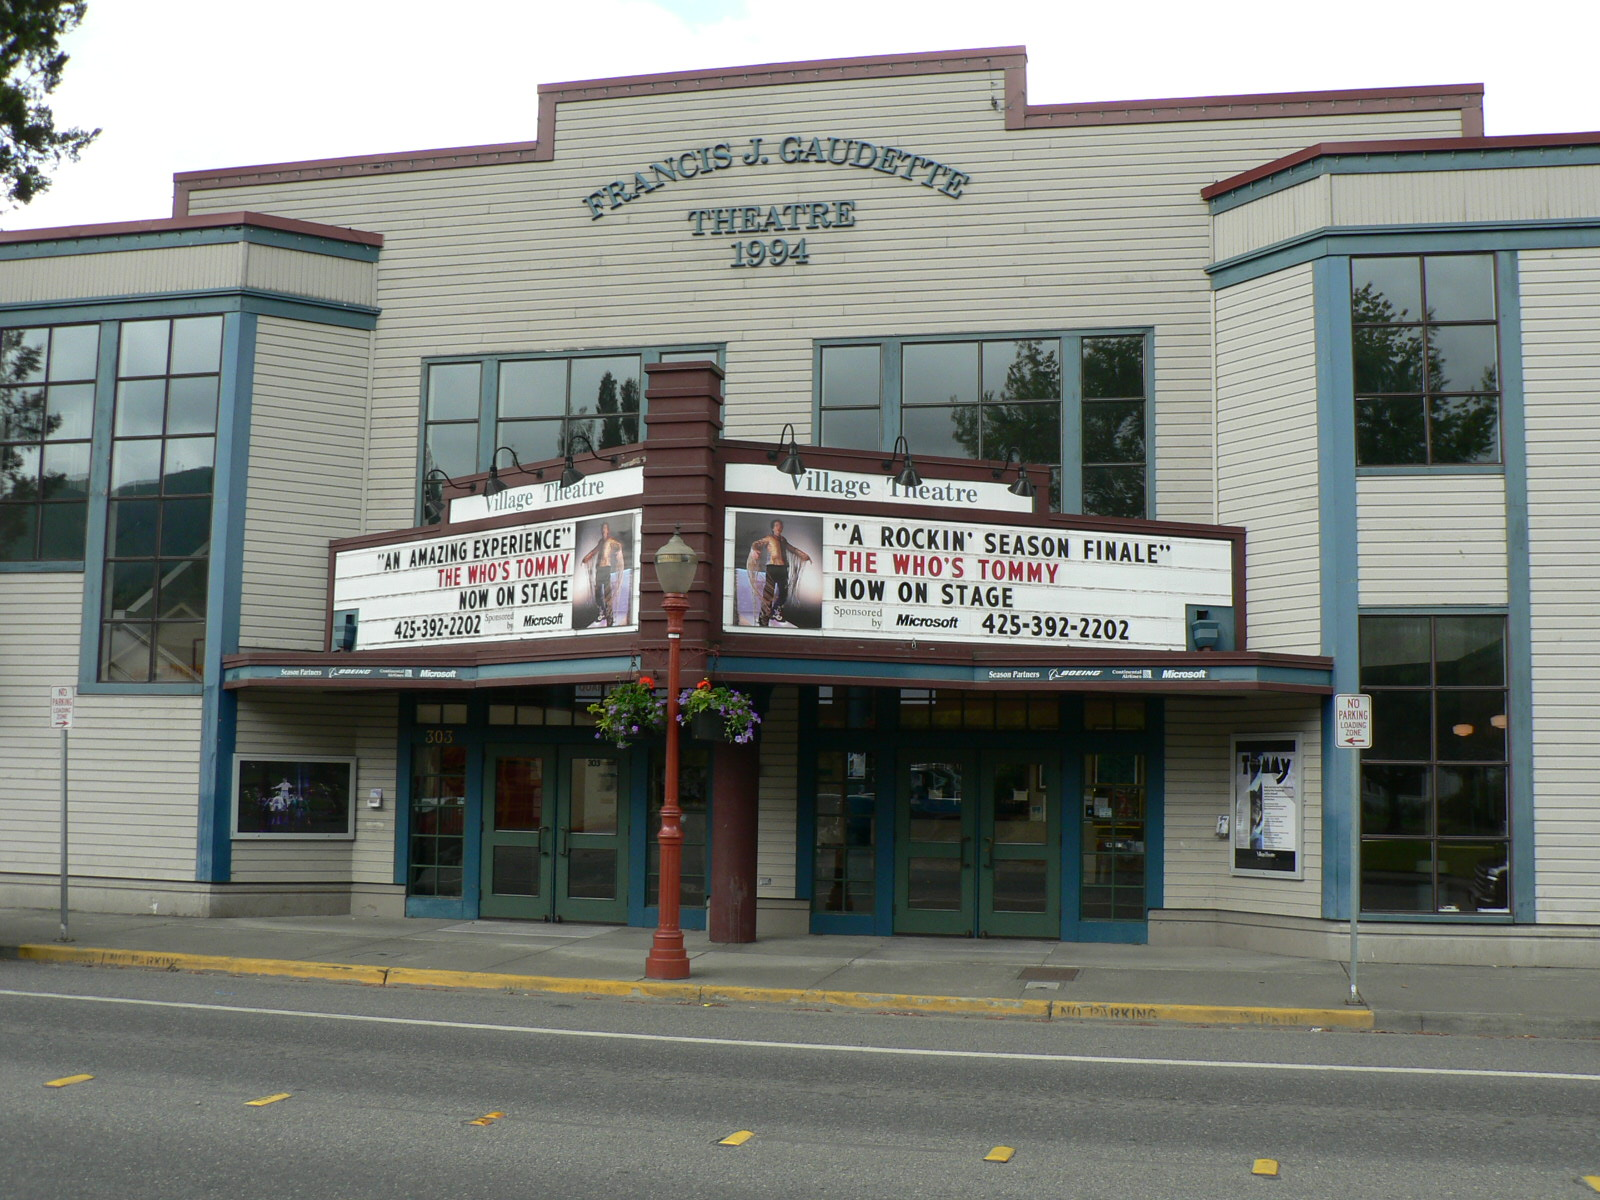 The Francis J. Gaudette Theatre  Home of the Village Theatre's BETM production from May 11 to July 3, 2016